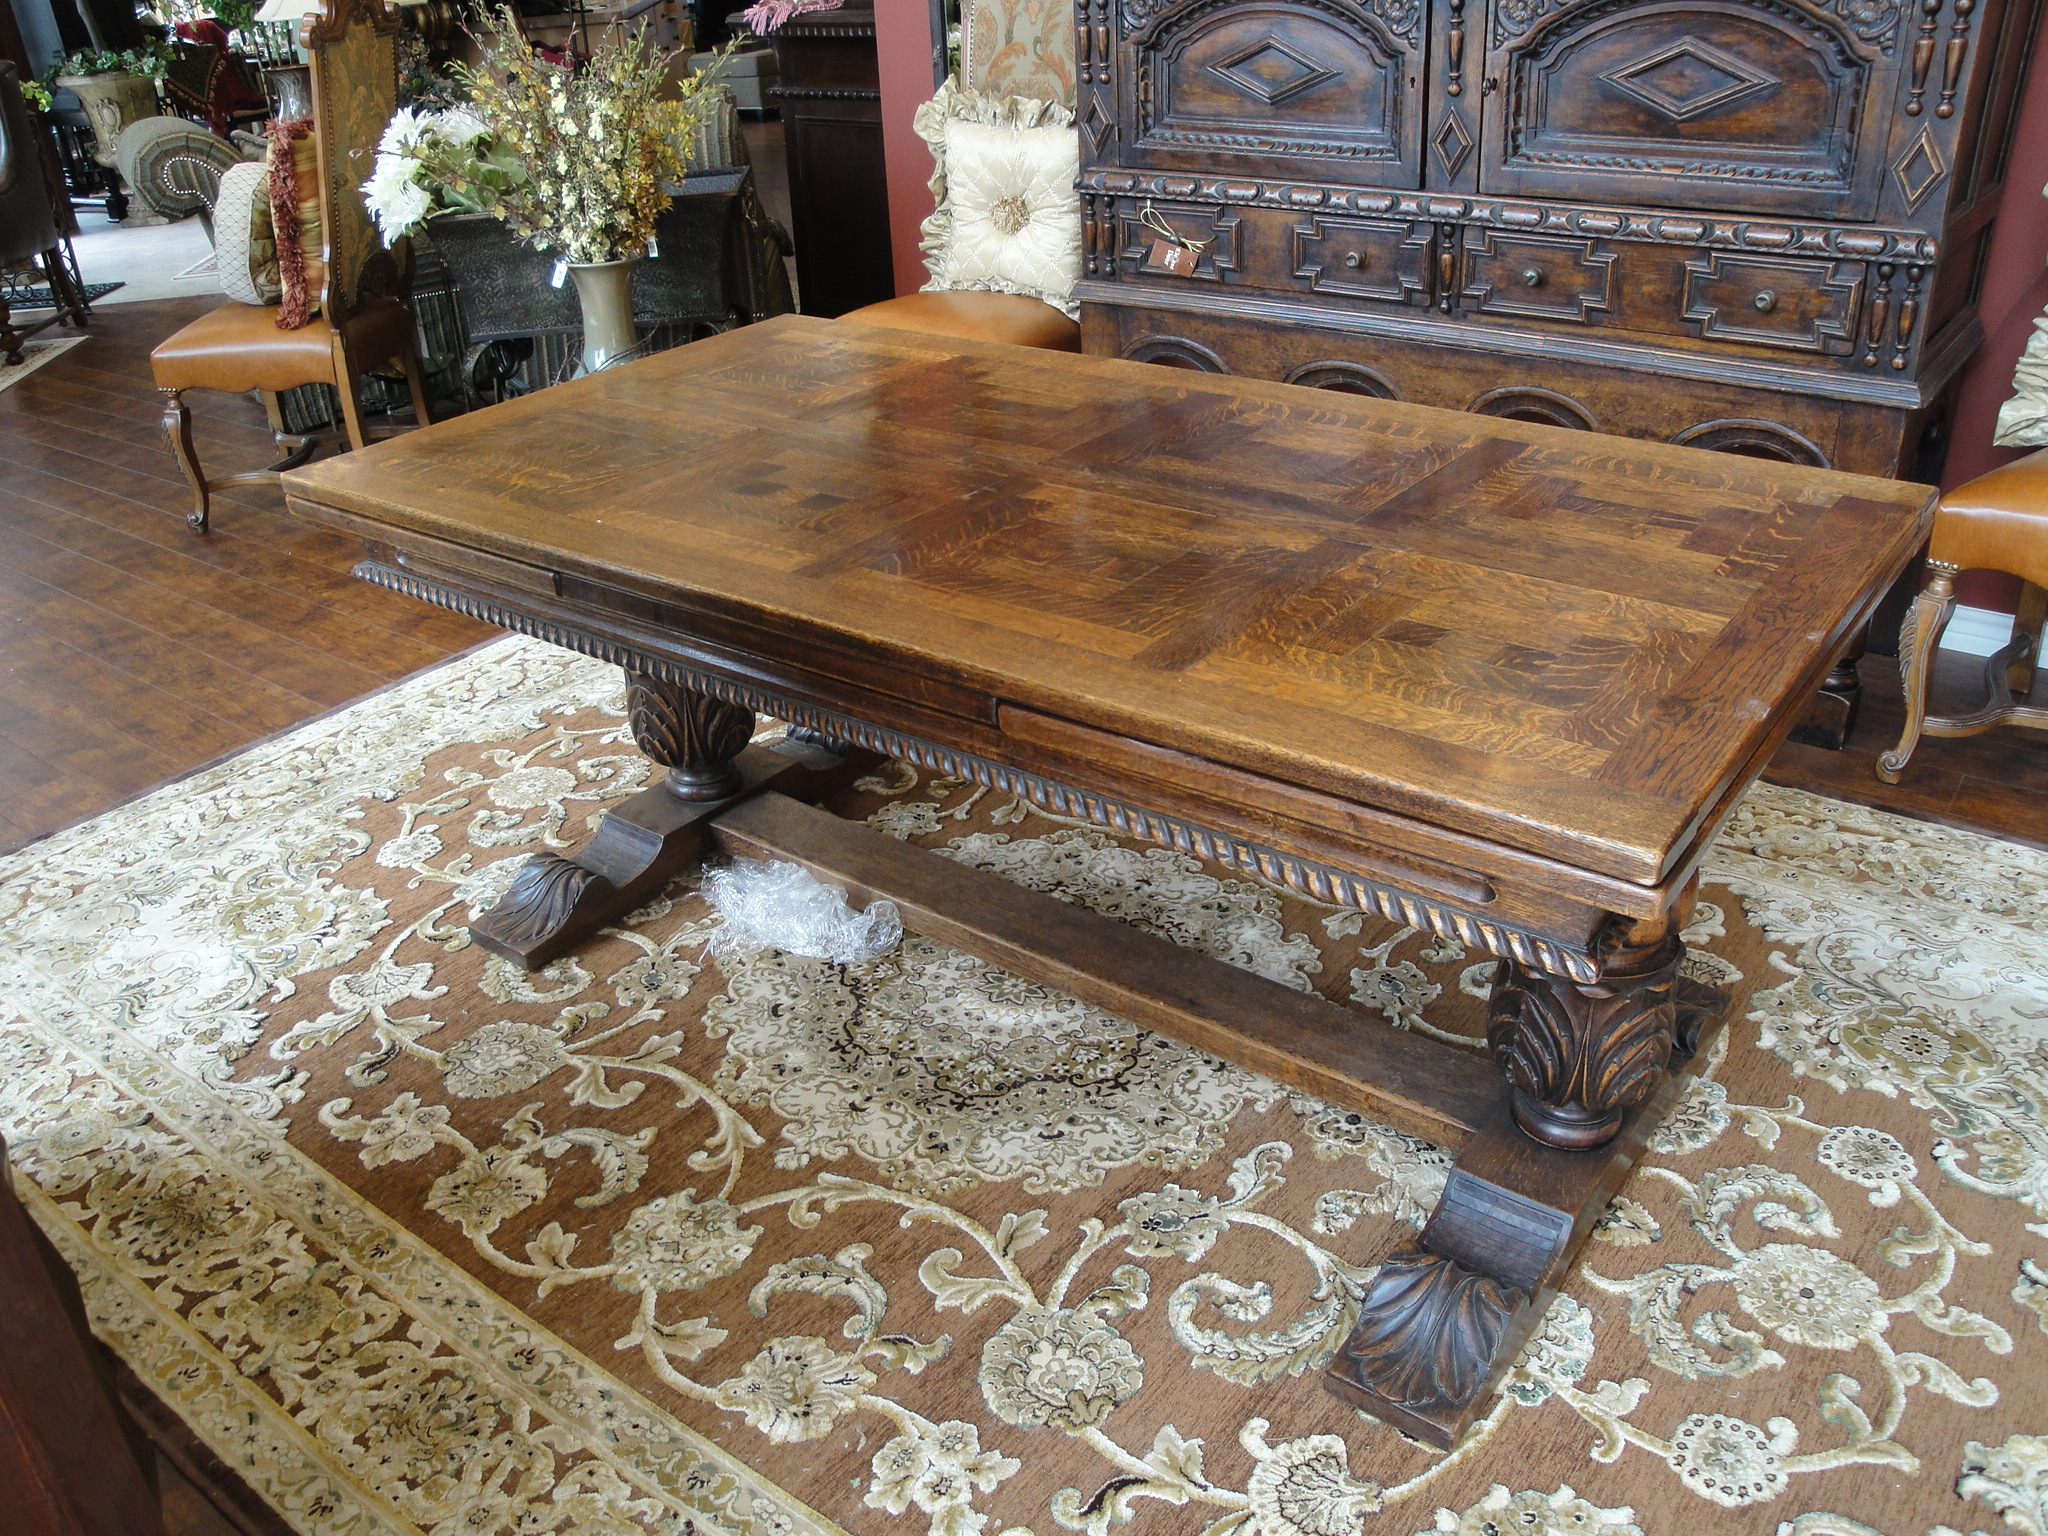 Wooden Tables For Sale 19th Century Oak Trestle Draw Leaf Dining Table For Sale